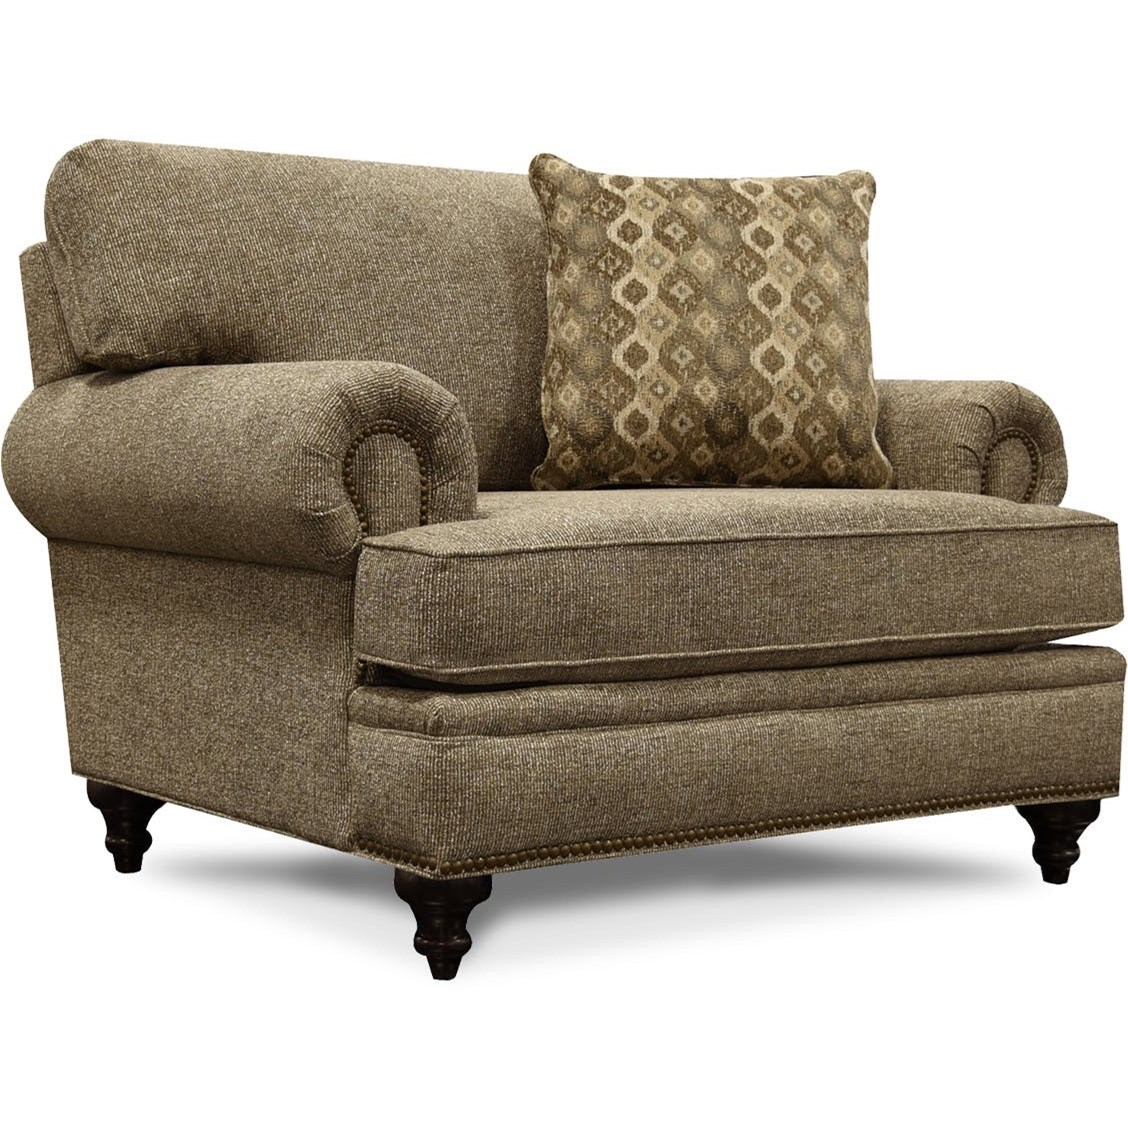 June Chair & 1/2 with Nailhead Trim by England at Miller Waldrop Furniture and Decor